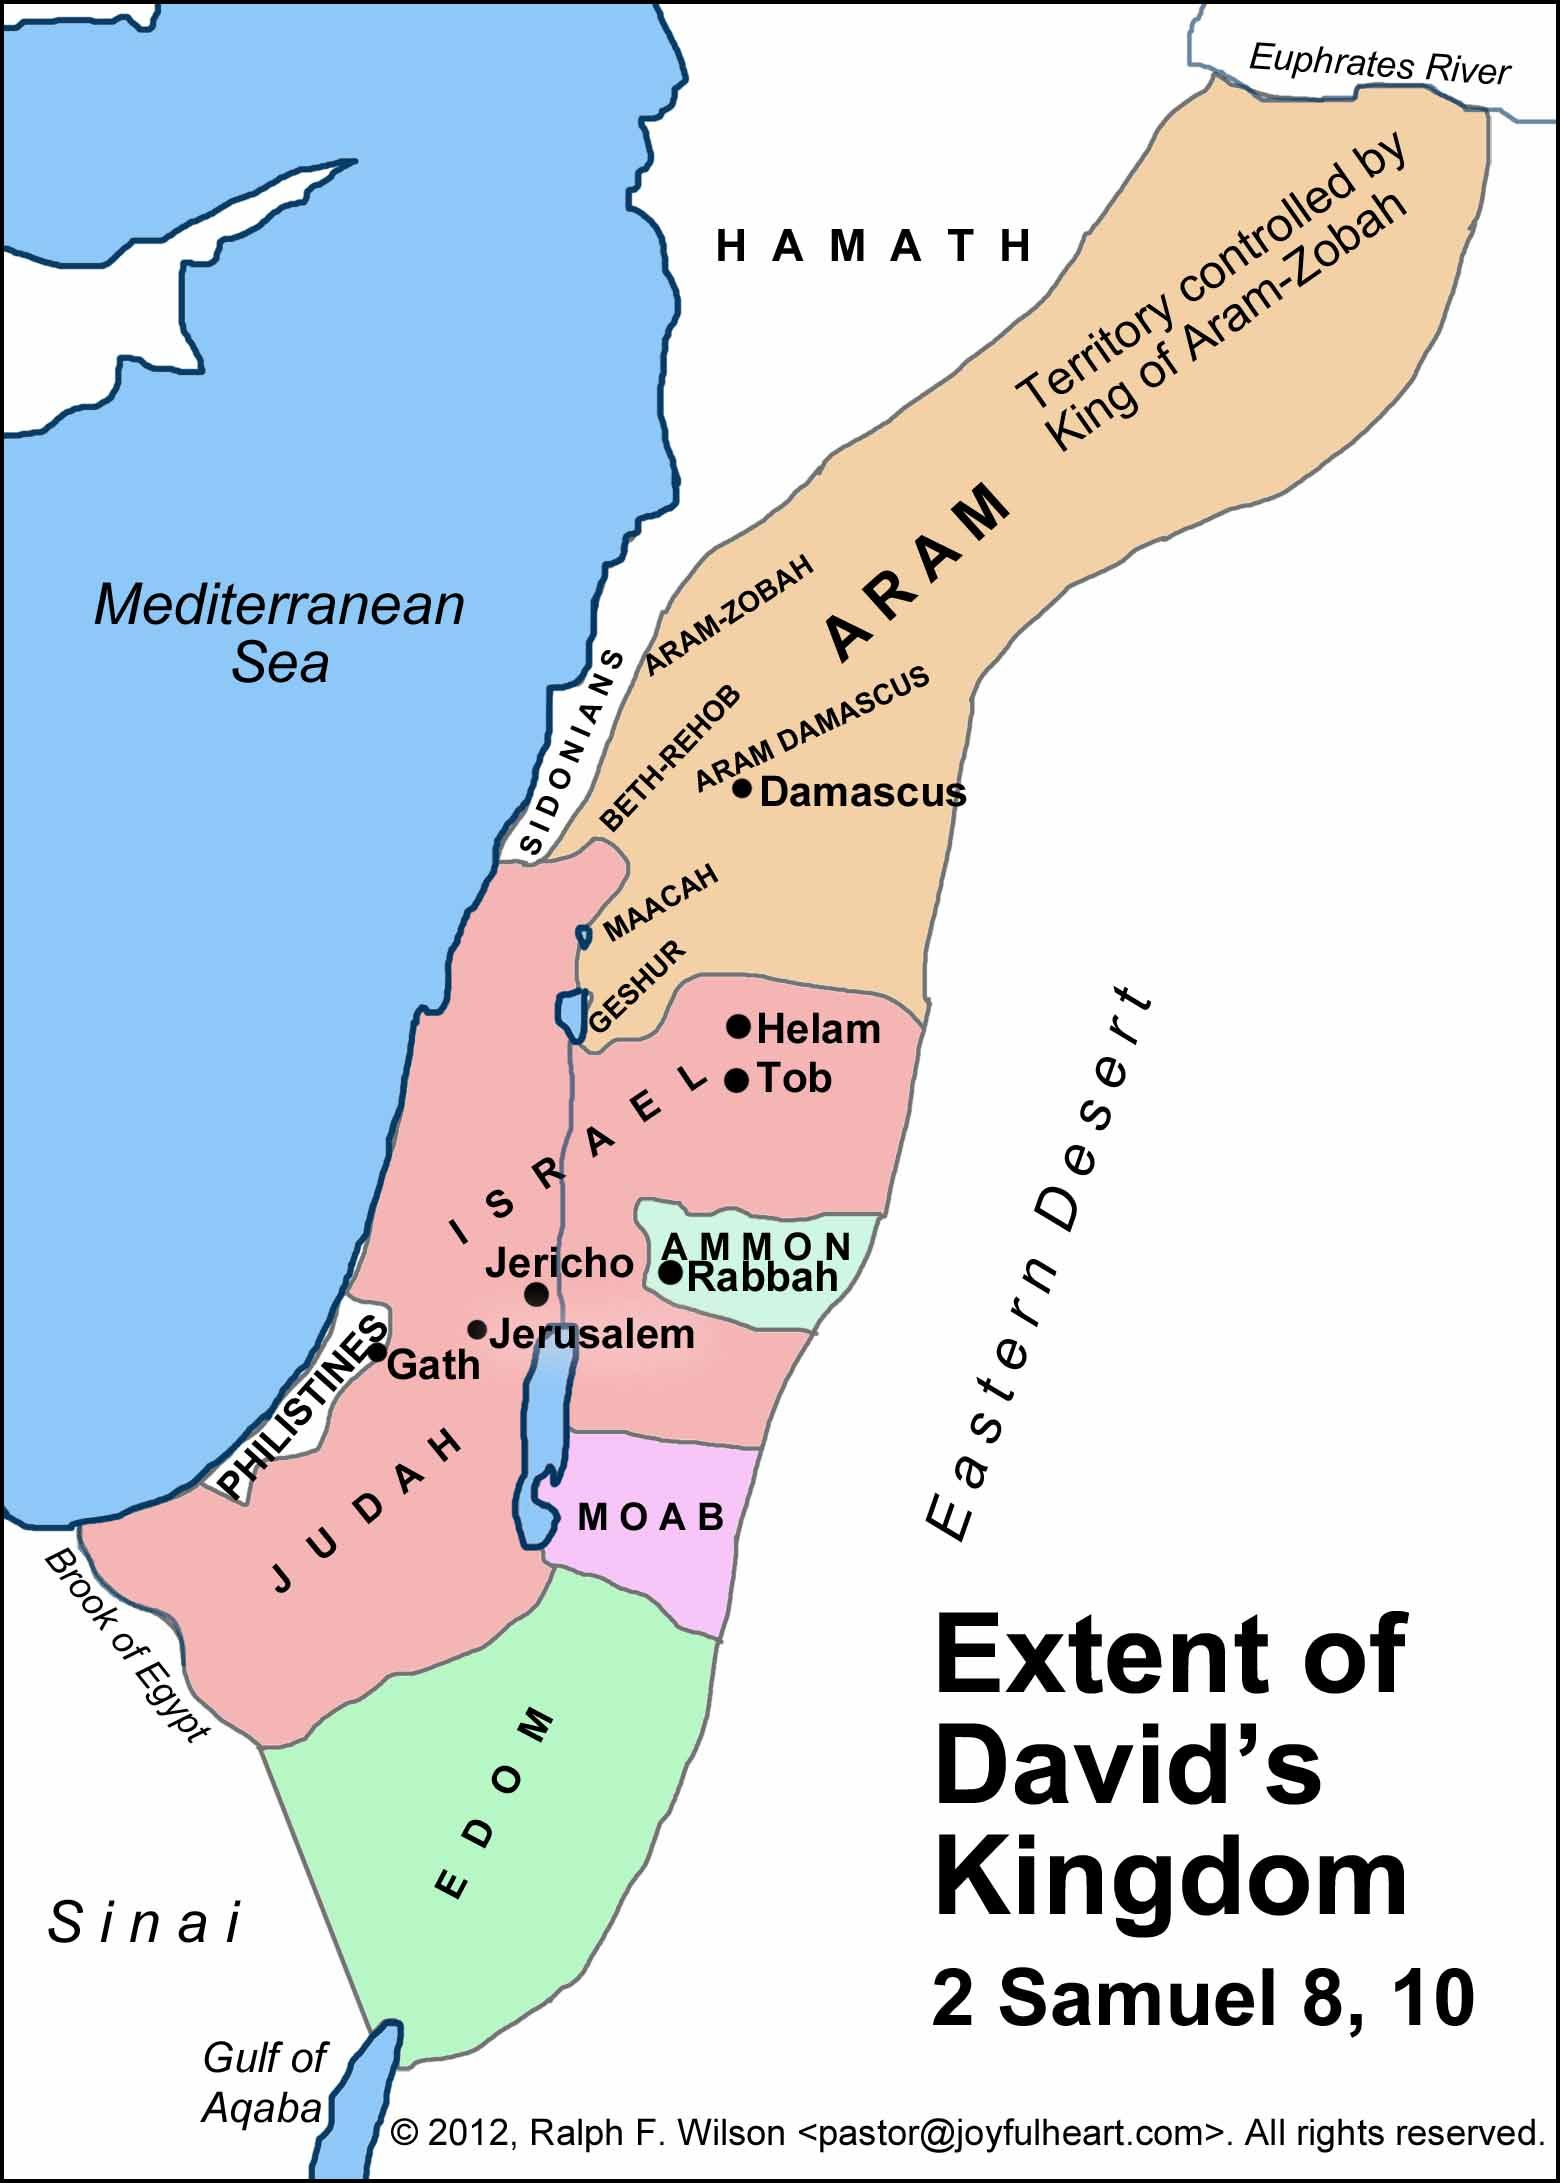 king david of israel Israel developed into a united kingdom under the leadership of king david (c1000-960 bce) who consolidated the various tribes under his single rule (having taken over from israel's first king, saul, who ruled circa 1020 bce) david chose the canaanite city of jerusalem as his capital and is said to have had the ark of the covenant moved there.